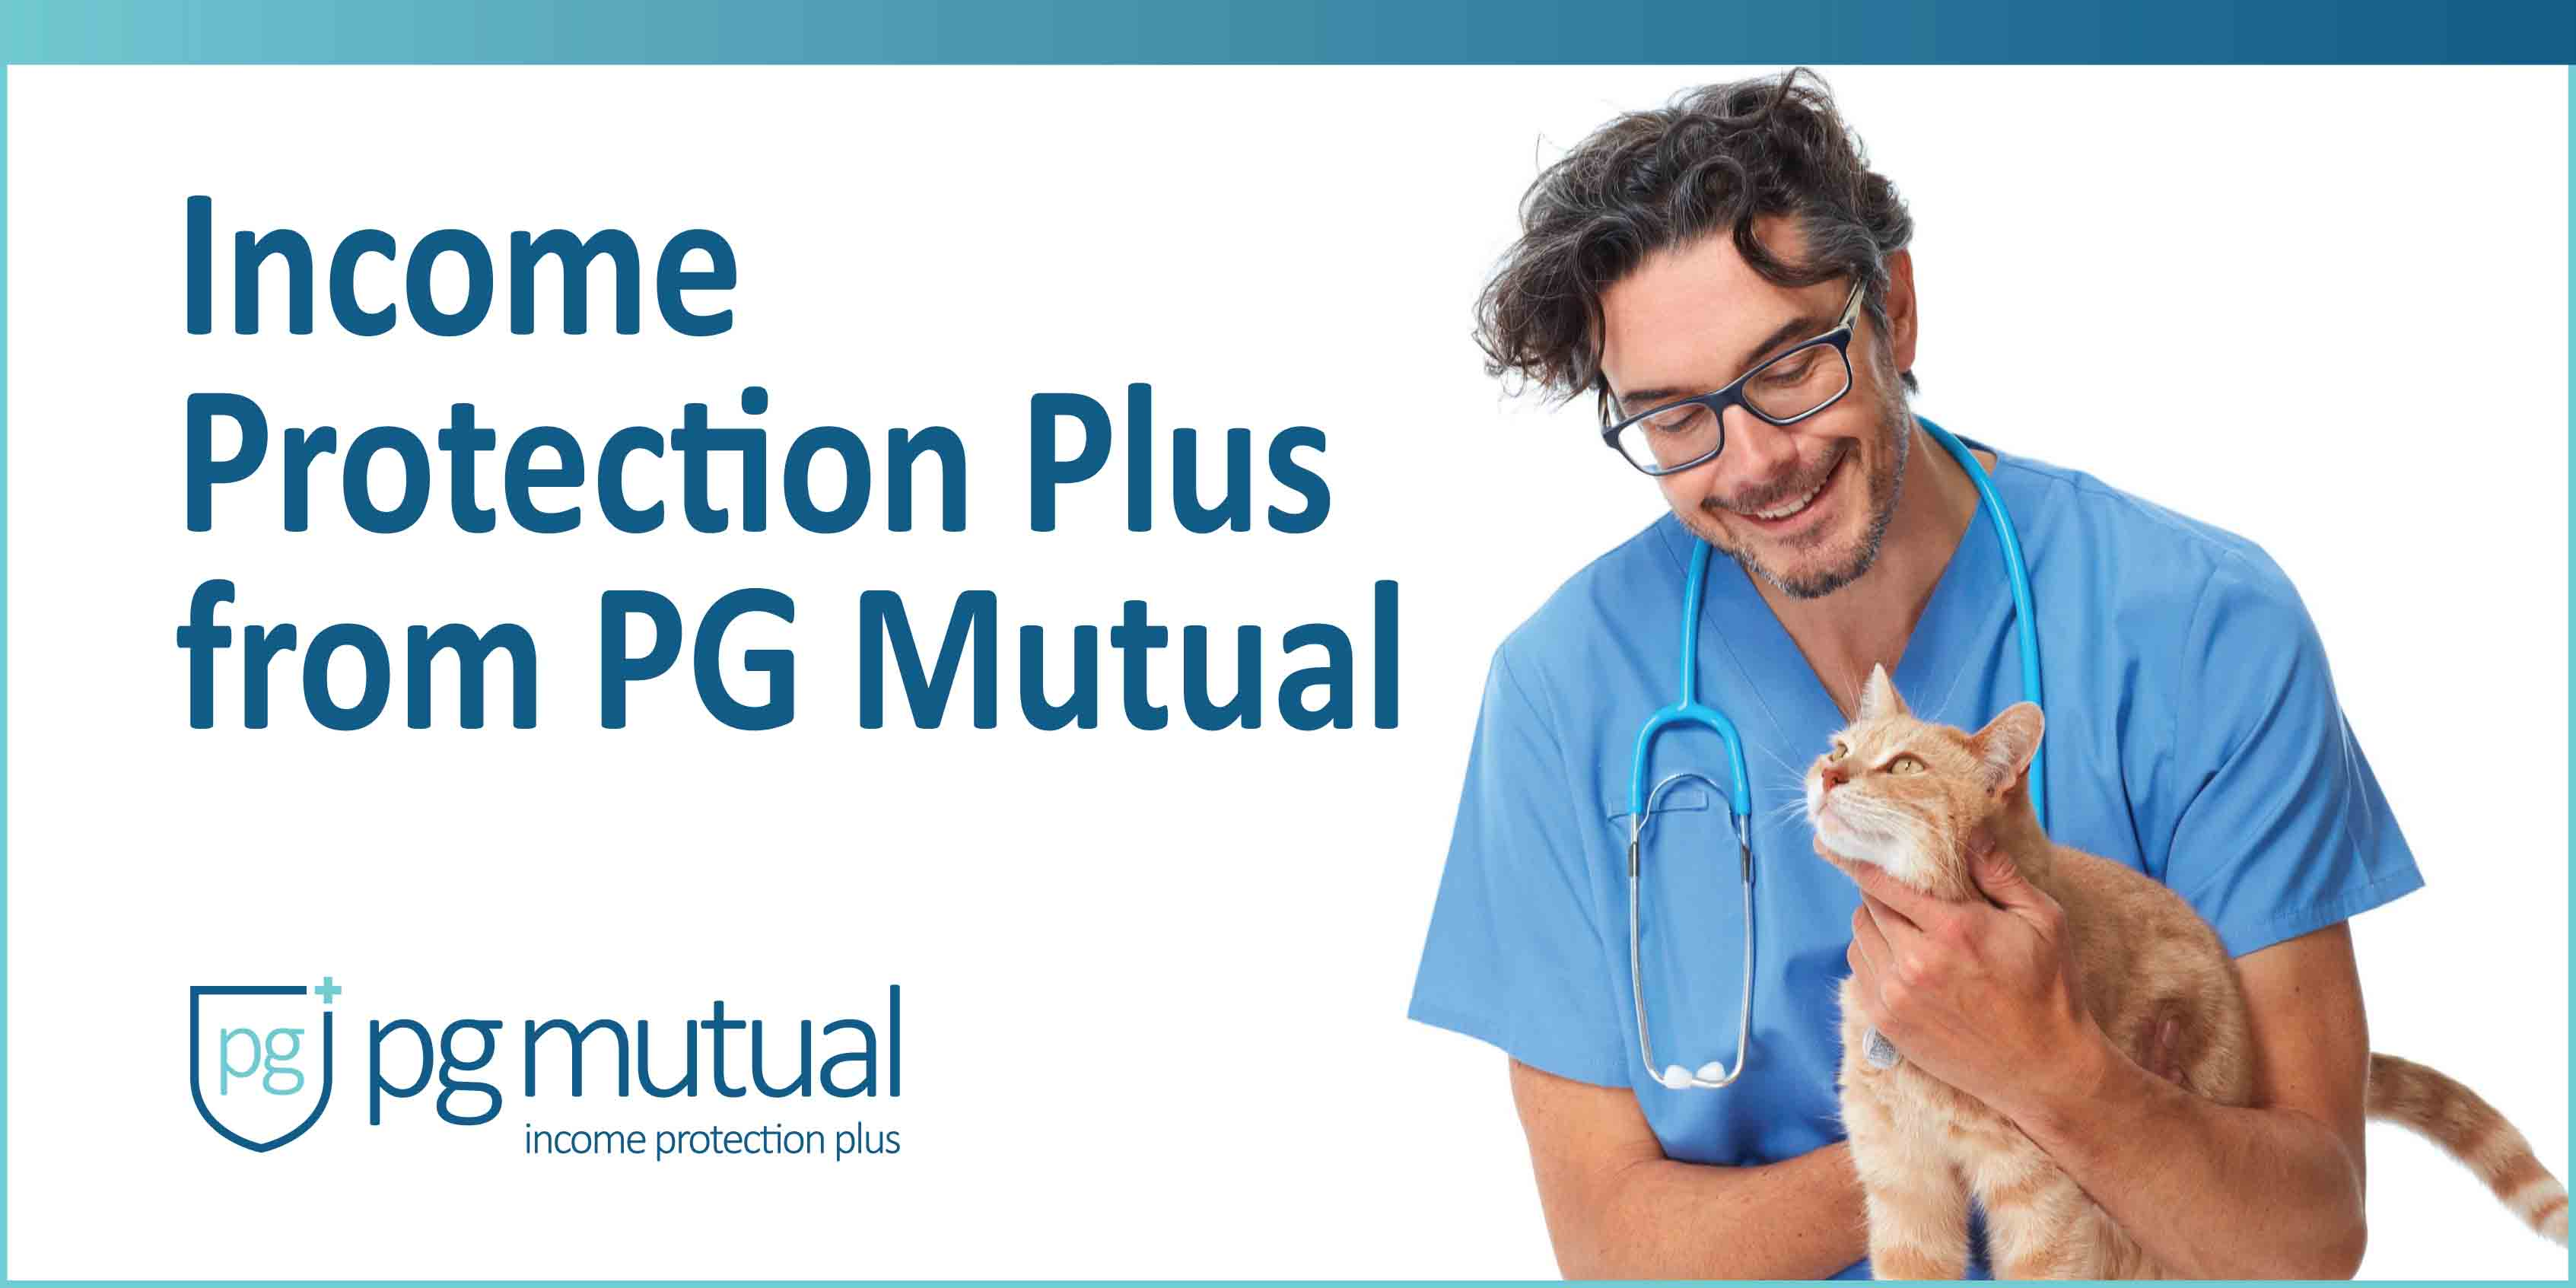 Income Protection Plus from PG Mutual